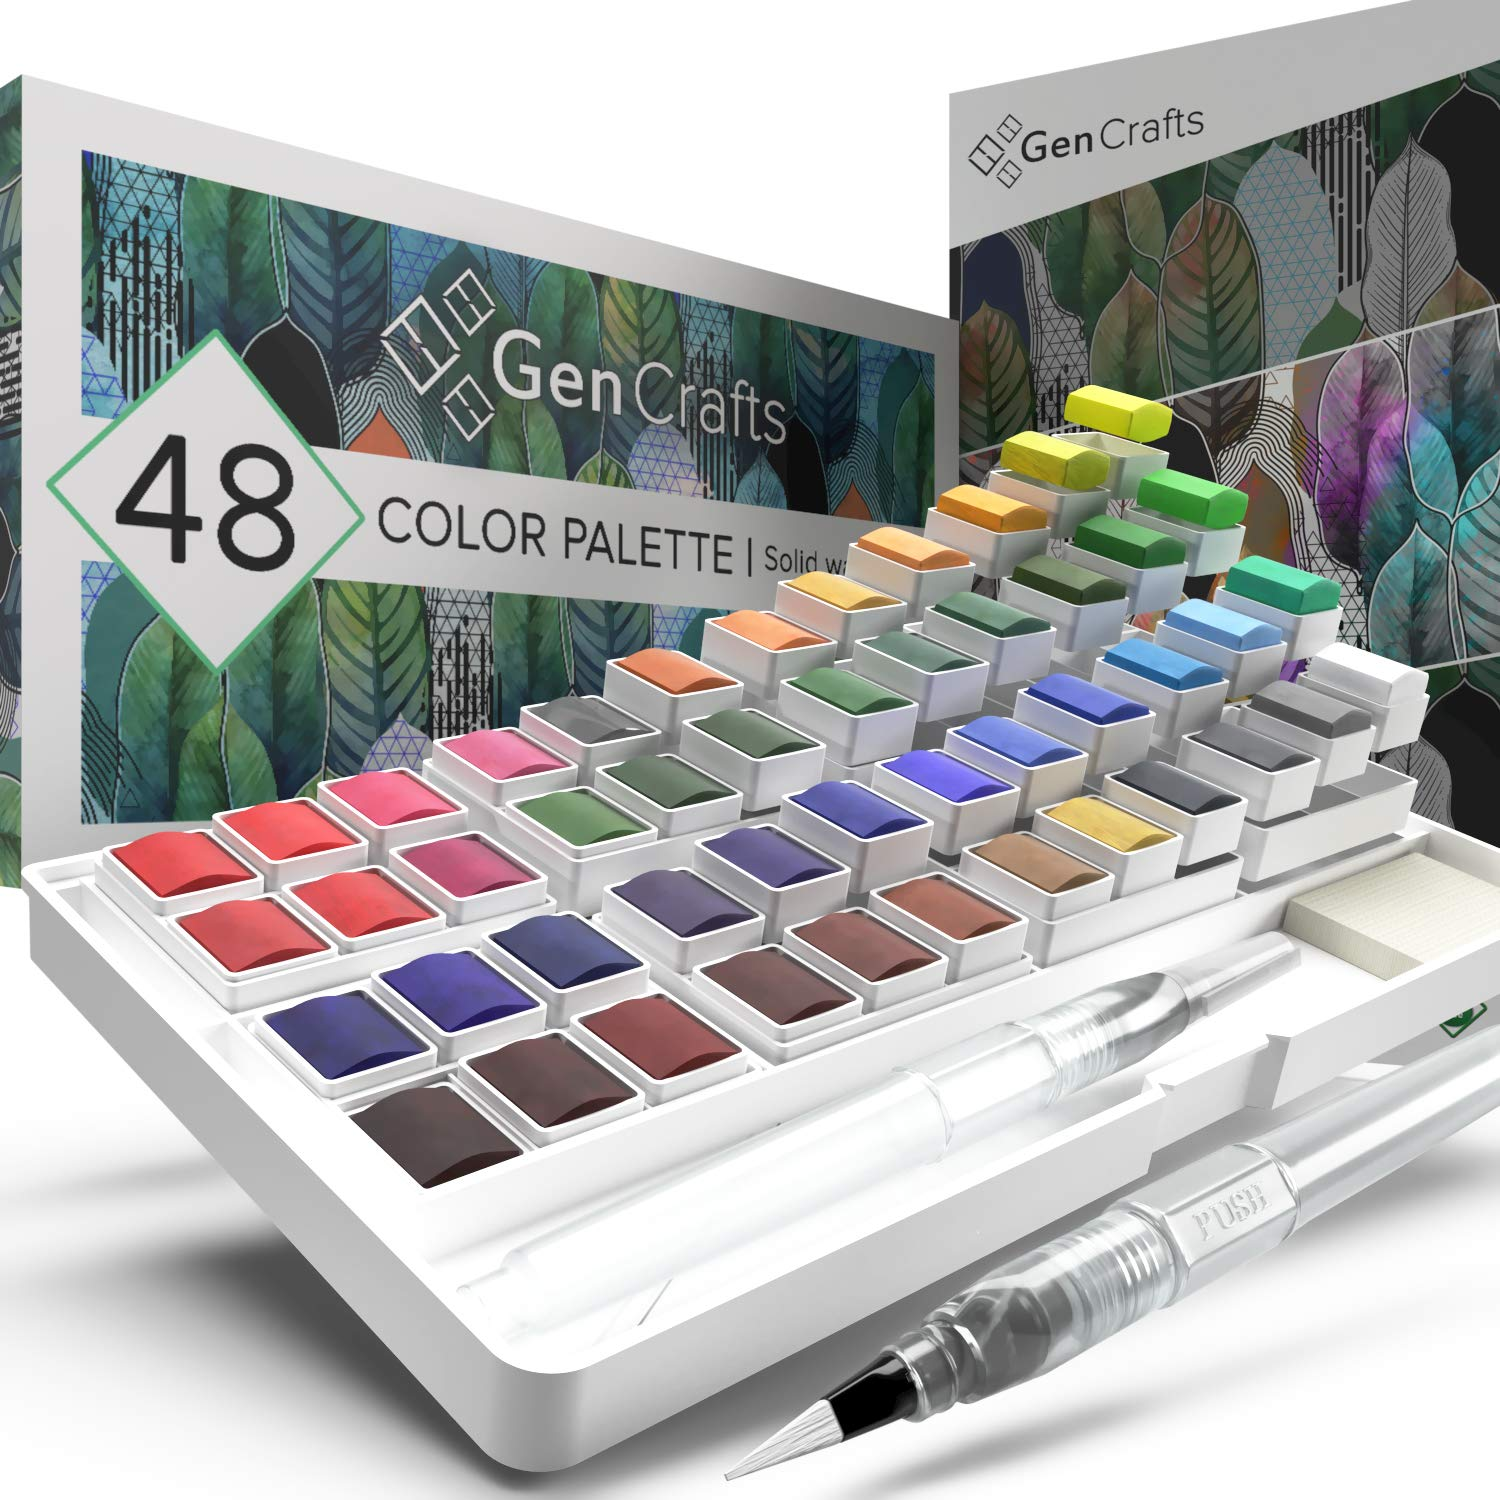 Watercolor Palette with Bonus Paper Pad by GenCrafts - Includes 48 Premium Colors - 2 Refillable Water Blending Brush Pens - No Mess Storage Case - 15 Sheets of Water Color Paper - Portable Painting by Genuine Crafts